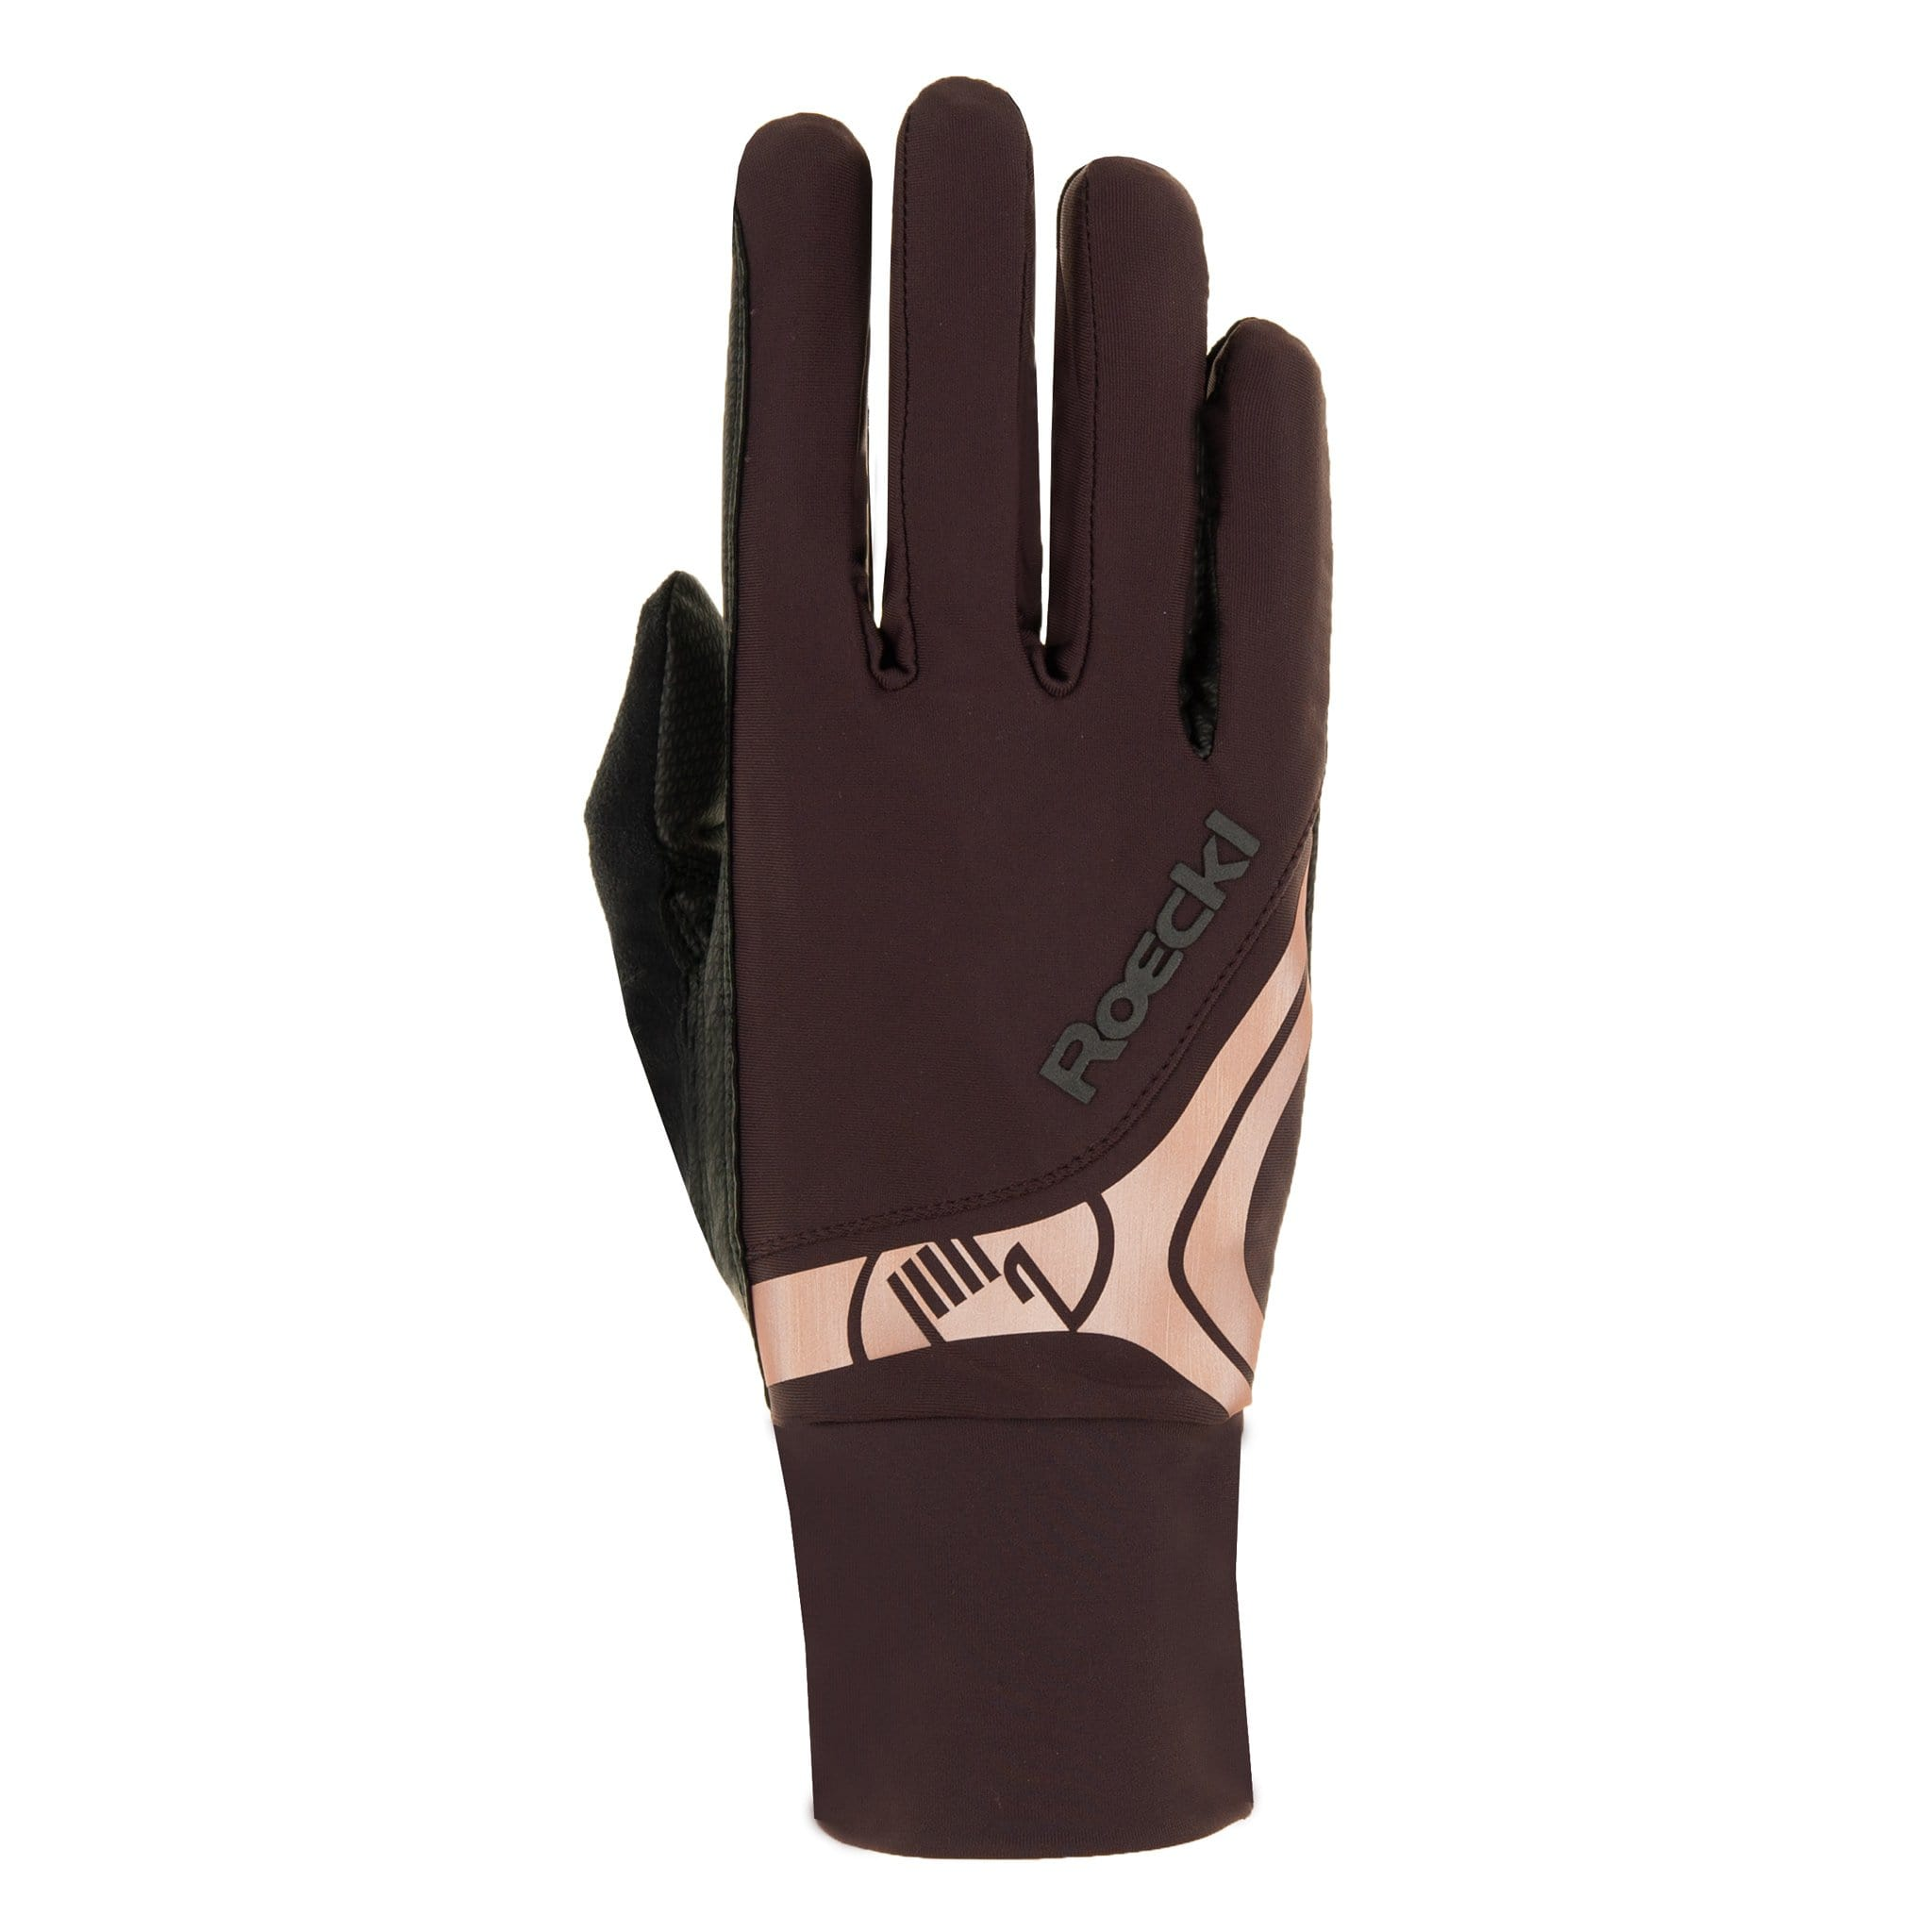 Roeckl Melbourne Gloves 3301-283 Mocha and Rose Gold Studio